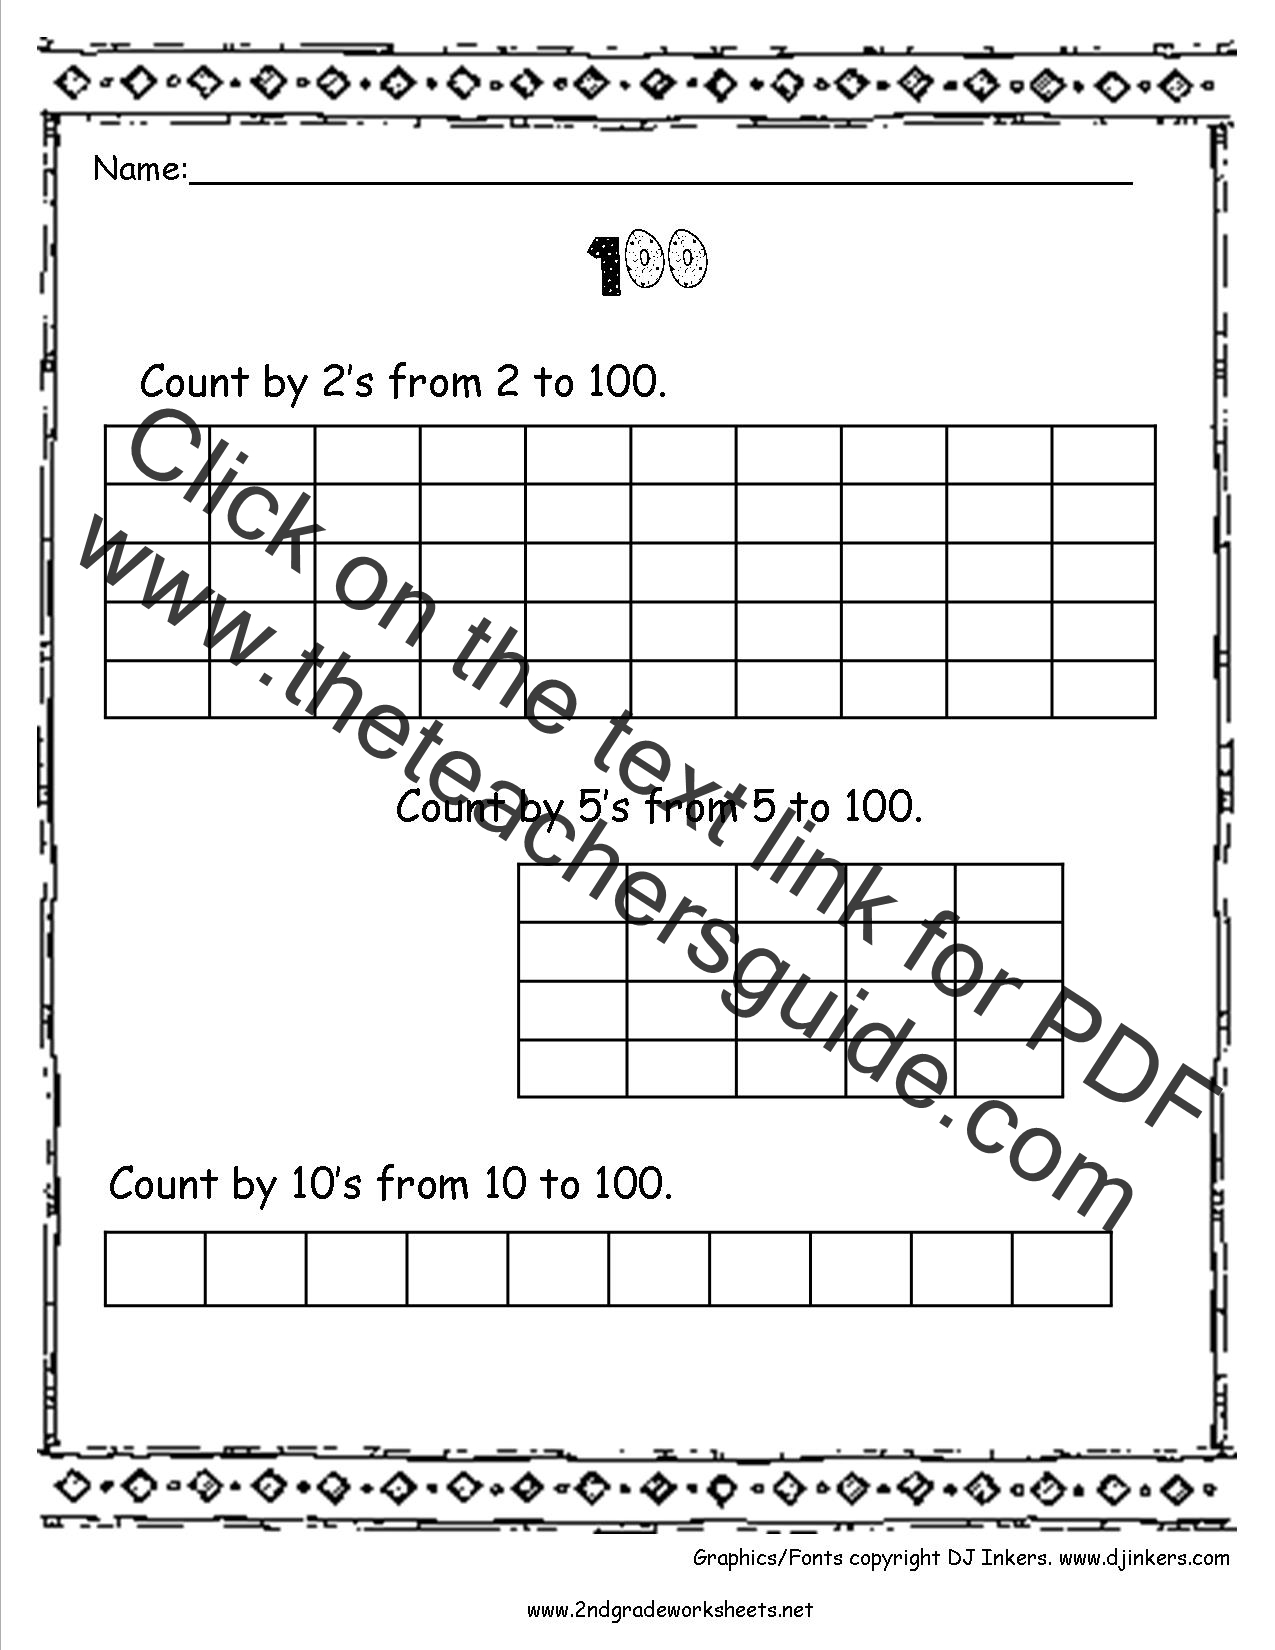 100th Day of School Worksheets and Printouts – 100th Day Math Worksheets